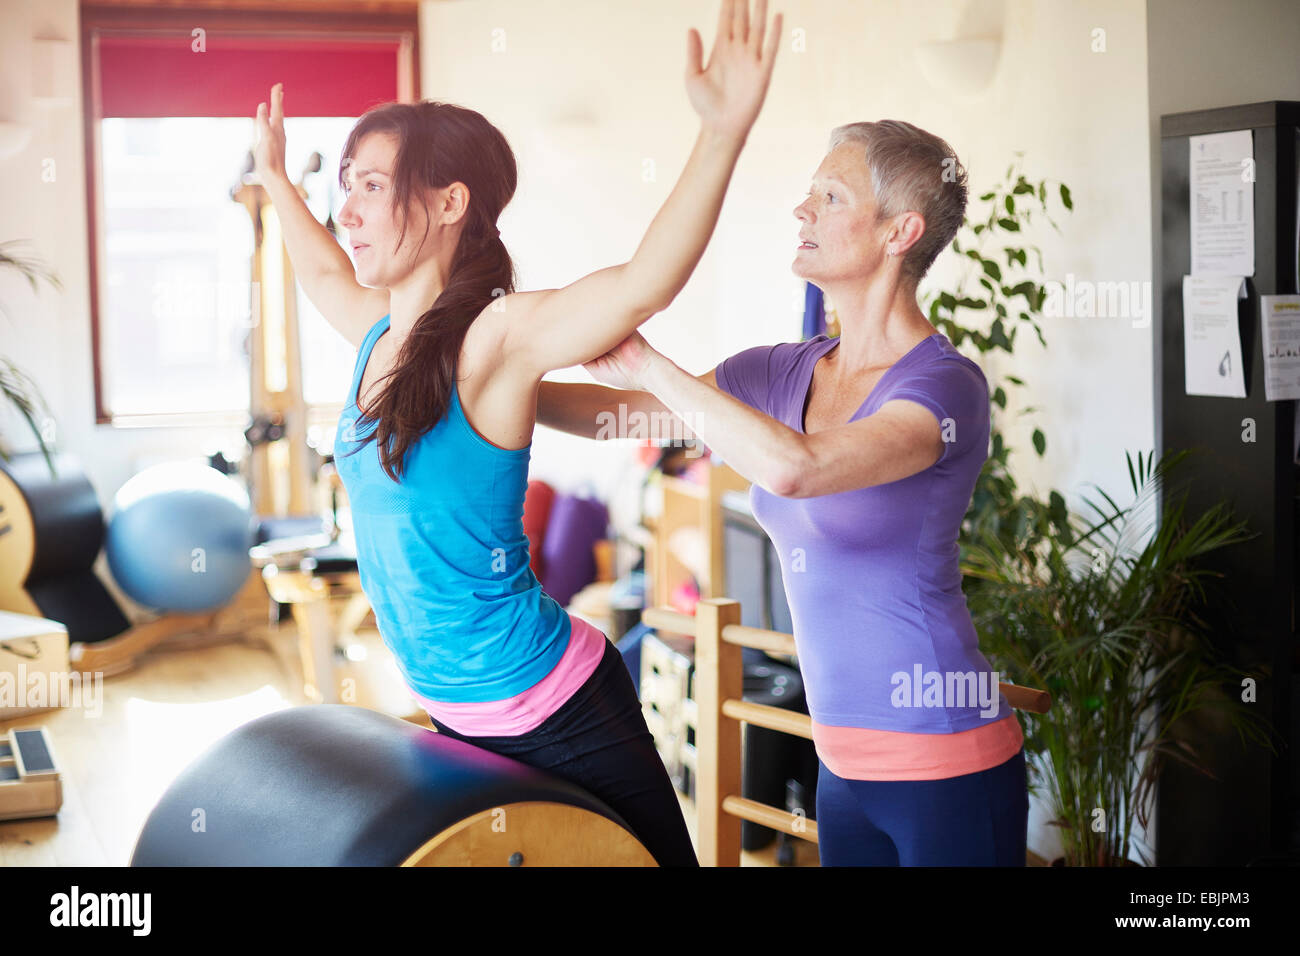 Female student leaning forward onto pilates barrel in pilates gym - Stock Image